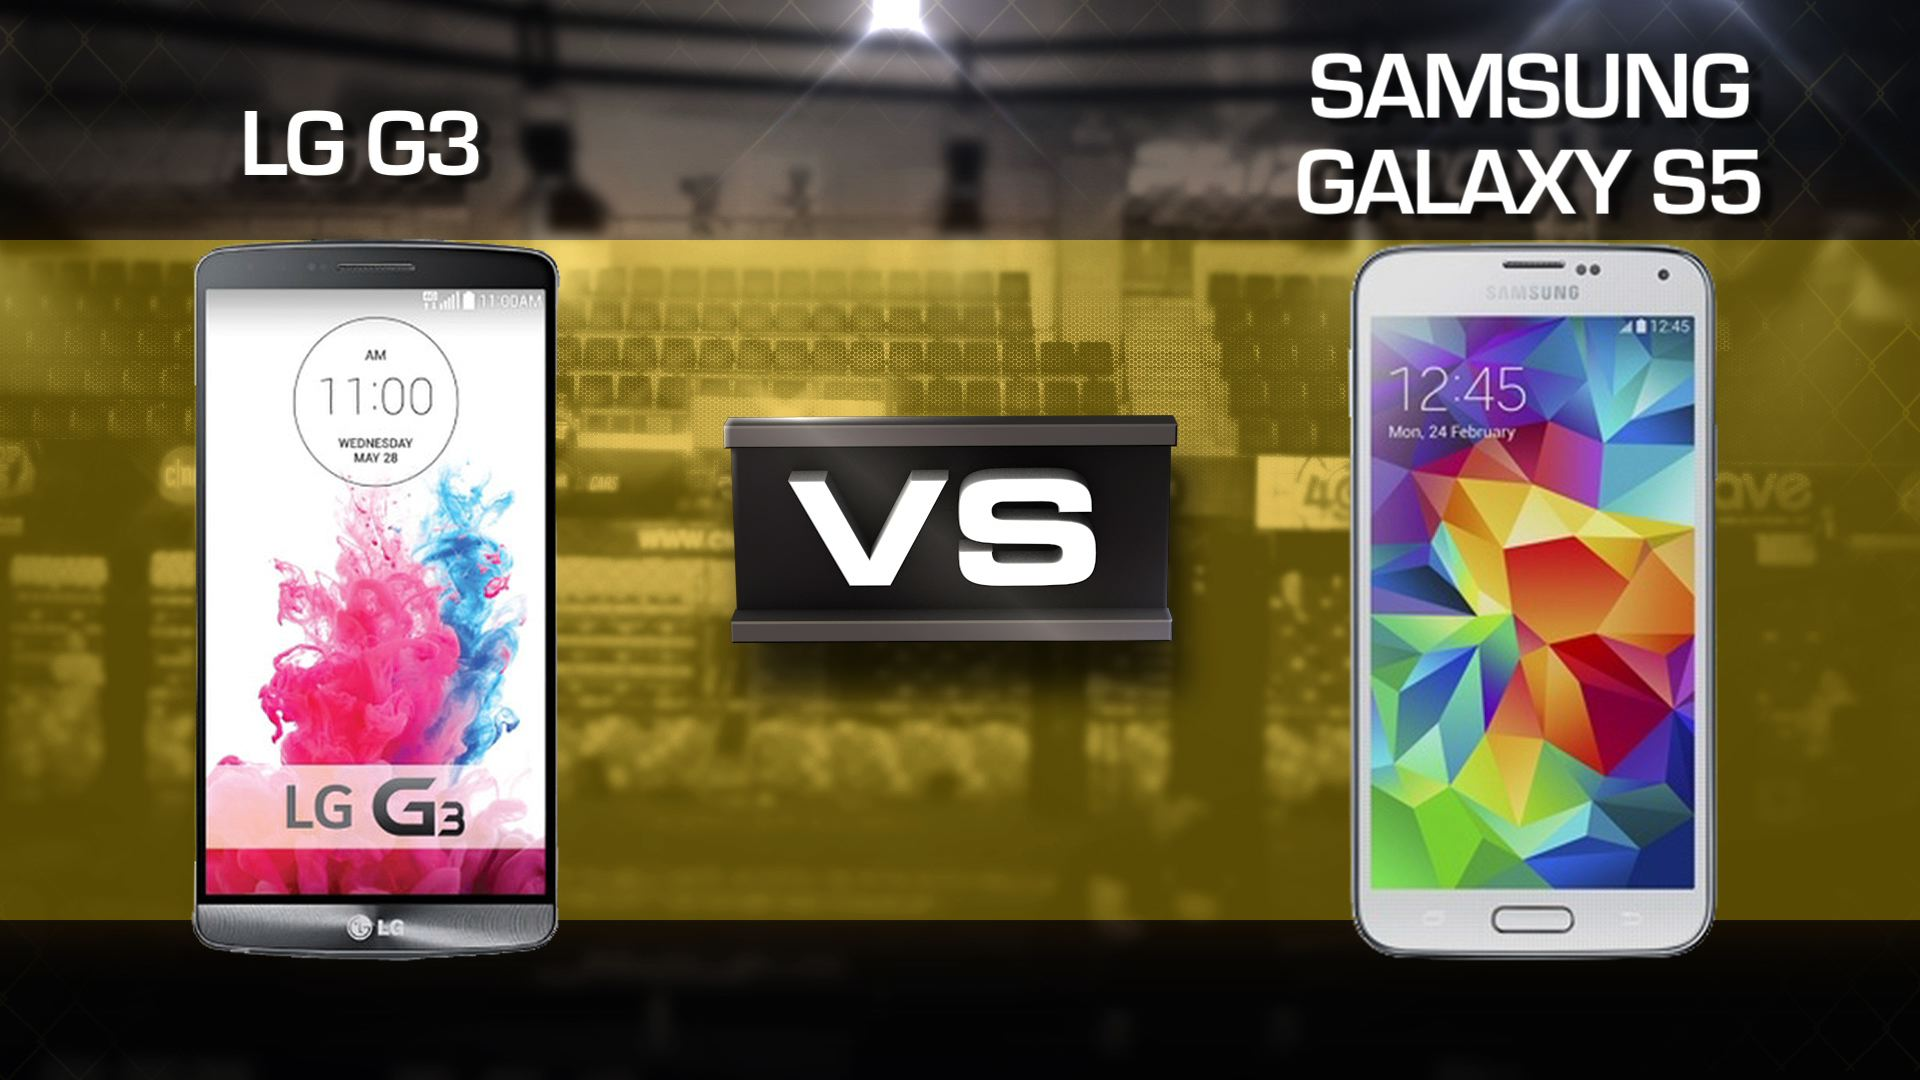 Video: LG G3 vs. Samsung Galaxy S5